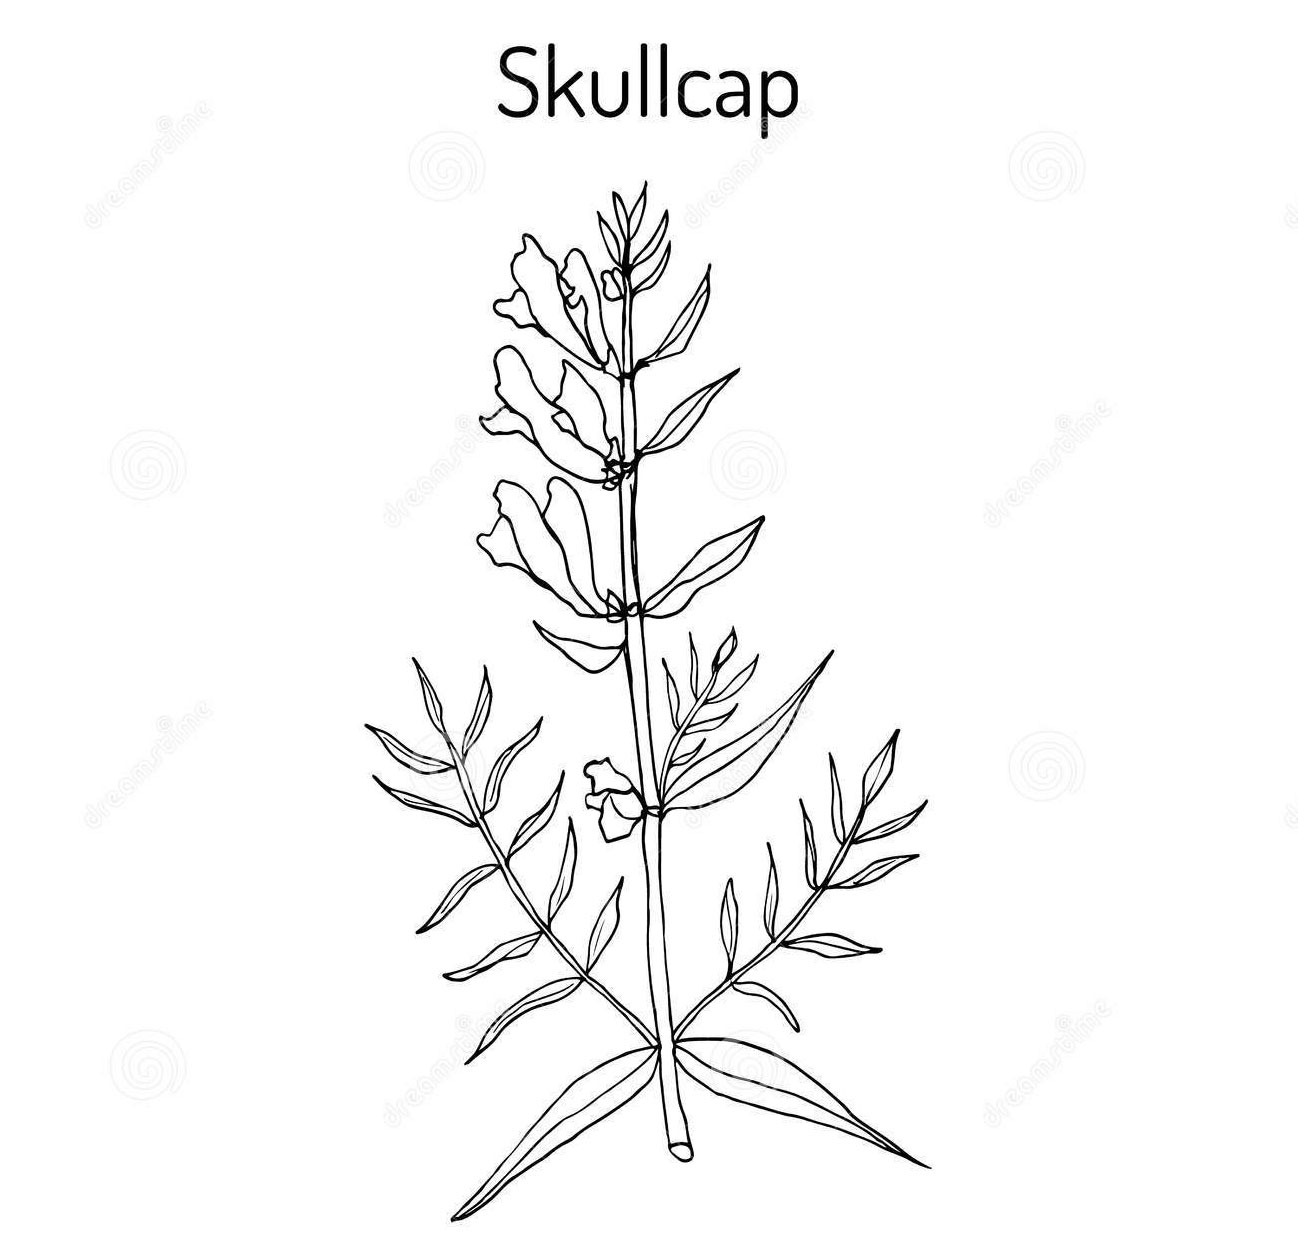 Sketch-of-Baical-Skullcap